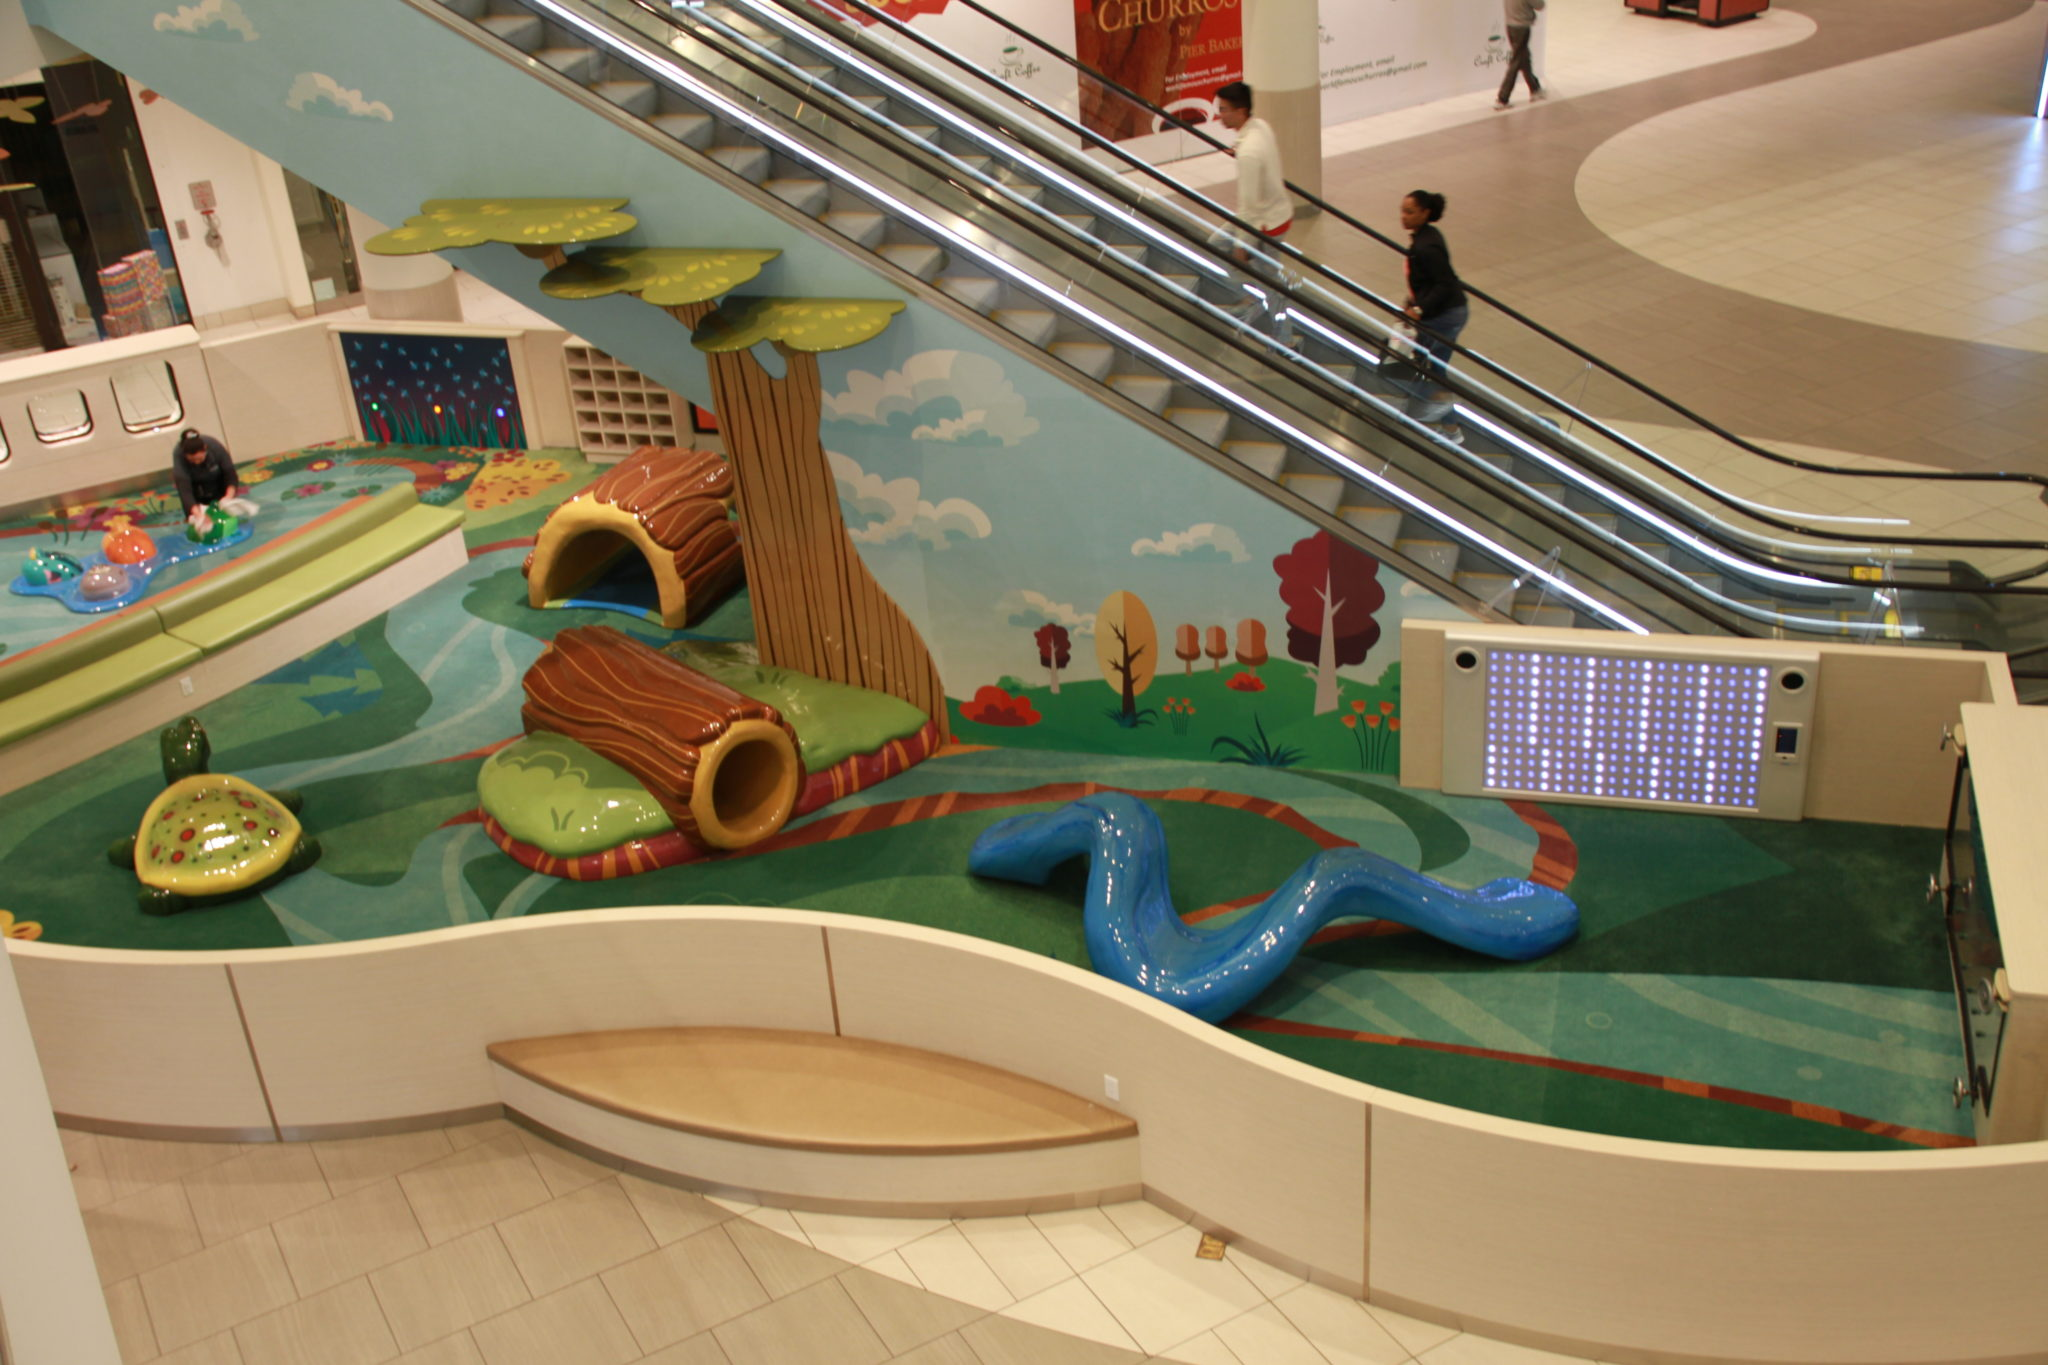 PLAYTIME play area at Del Amo Fashion Center side view